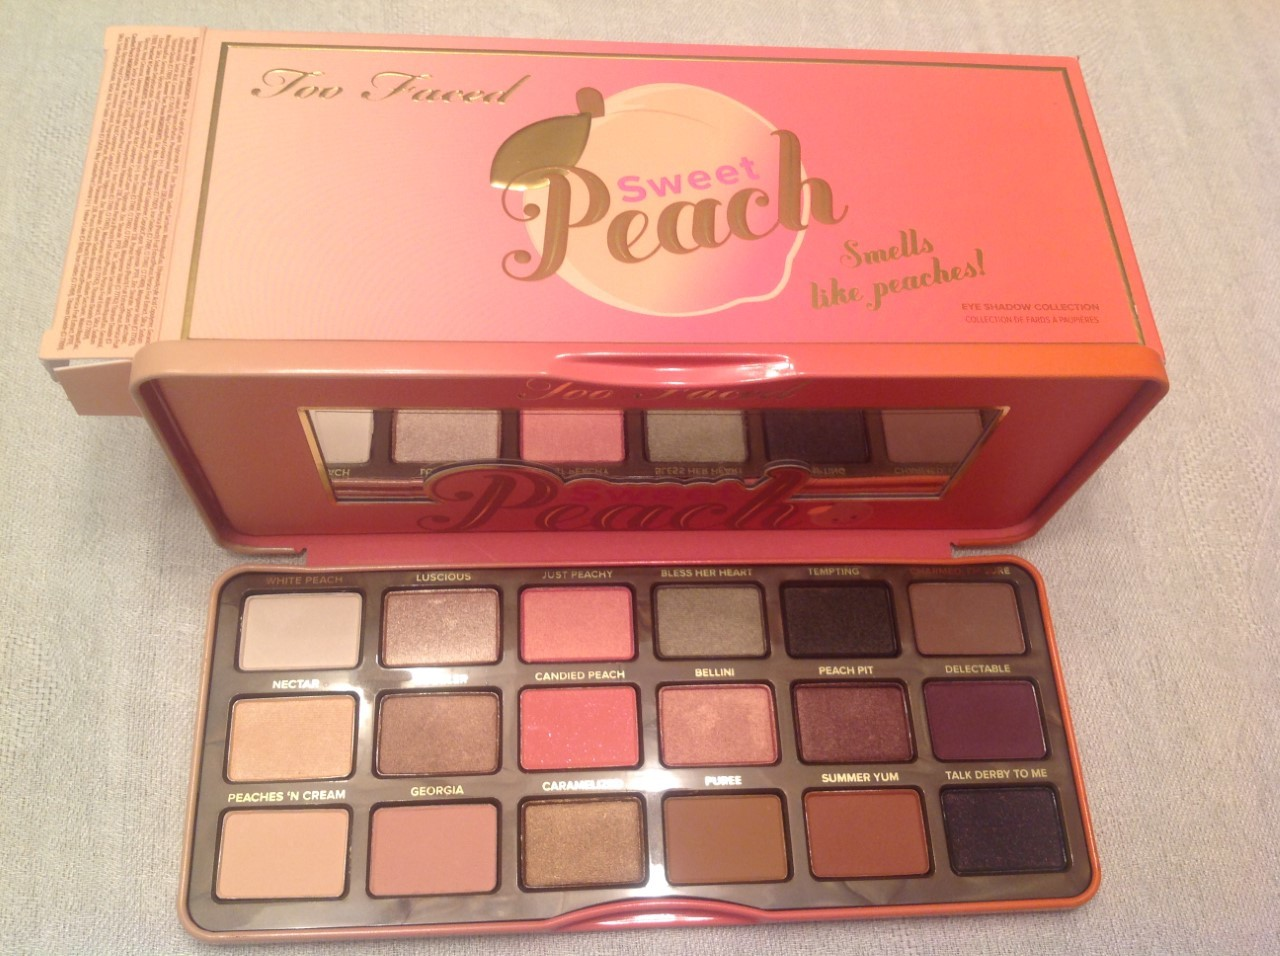 Primary image for 100% AUTHENTIC TOO FACED SWEET PEACH EYE SHADOW PALETTE, FULL SIZE 18 COLORS